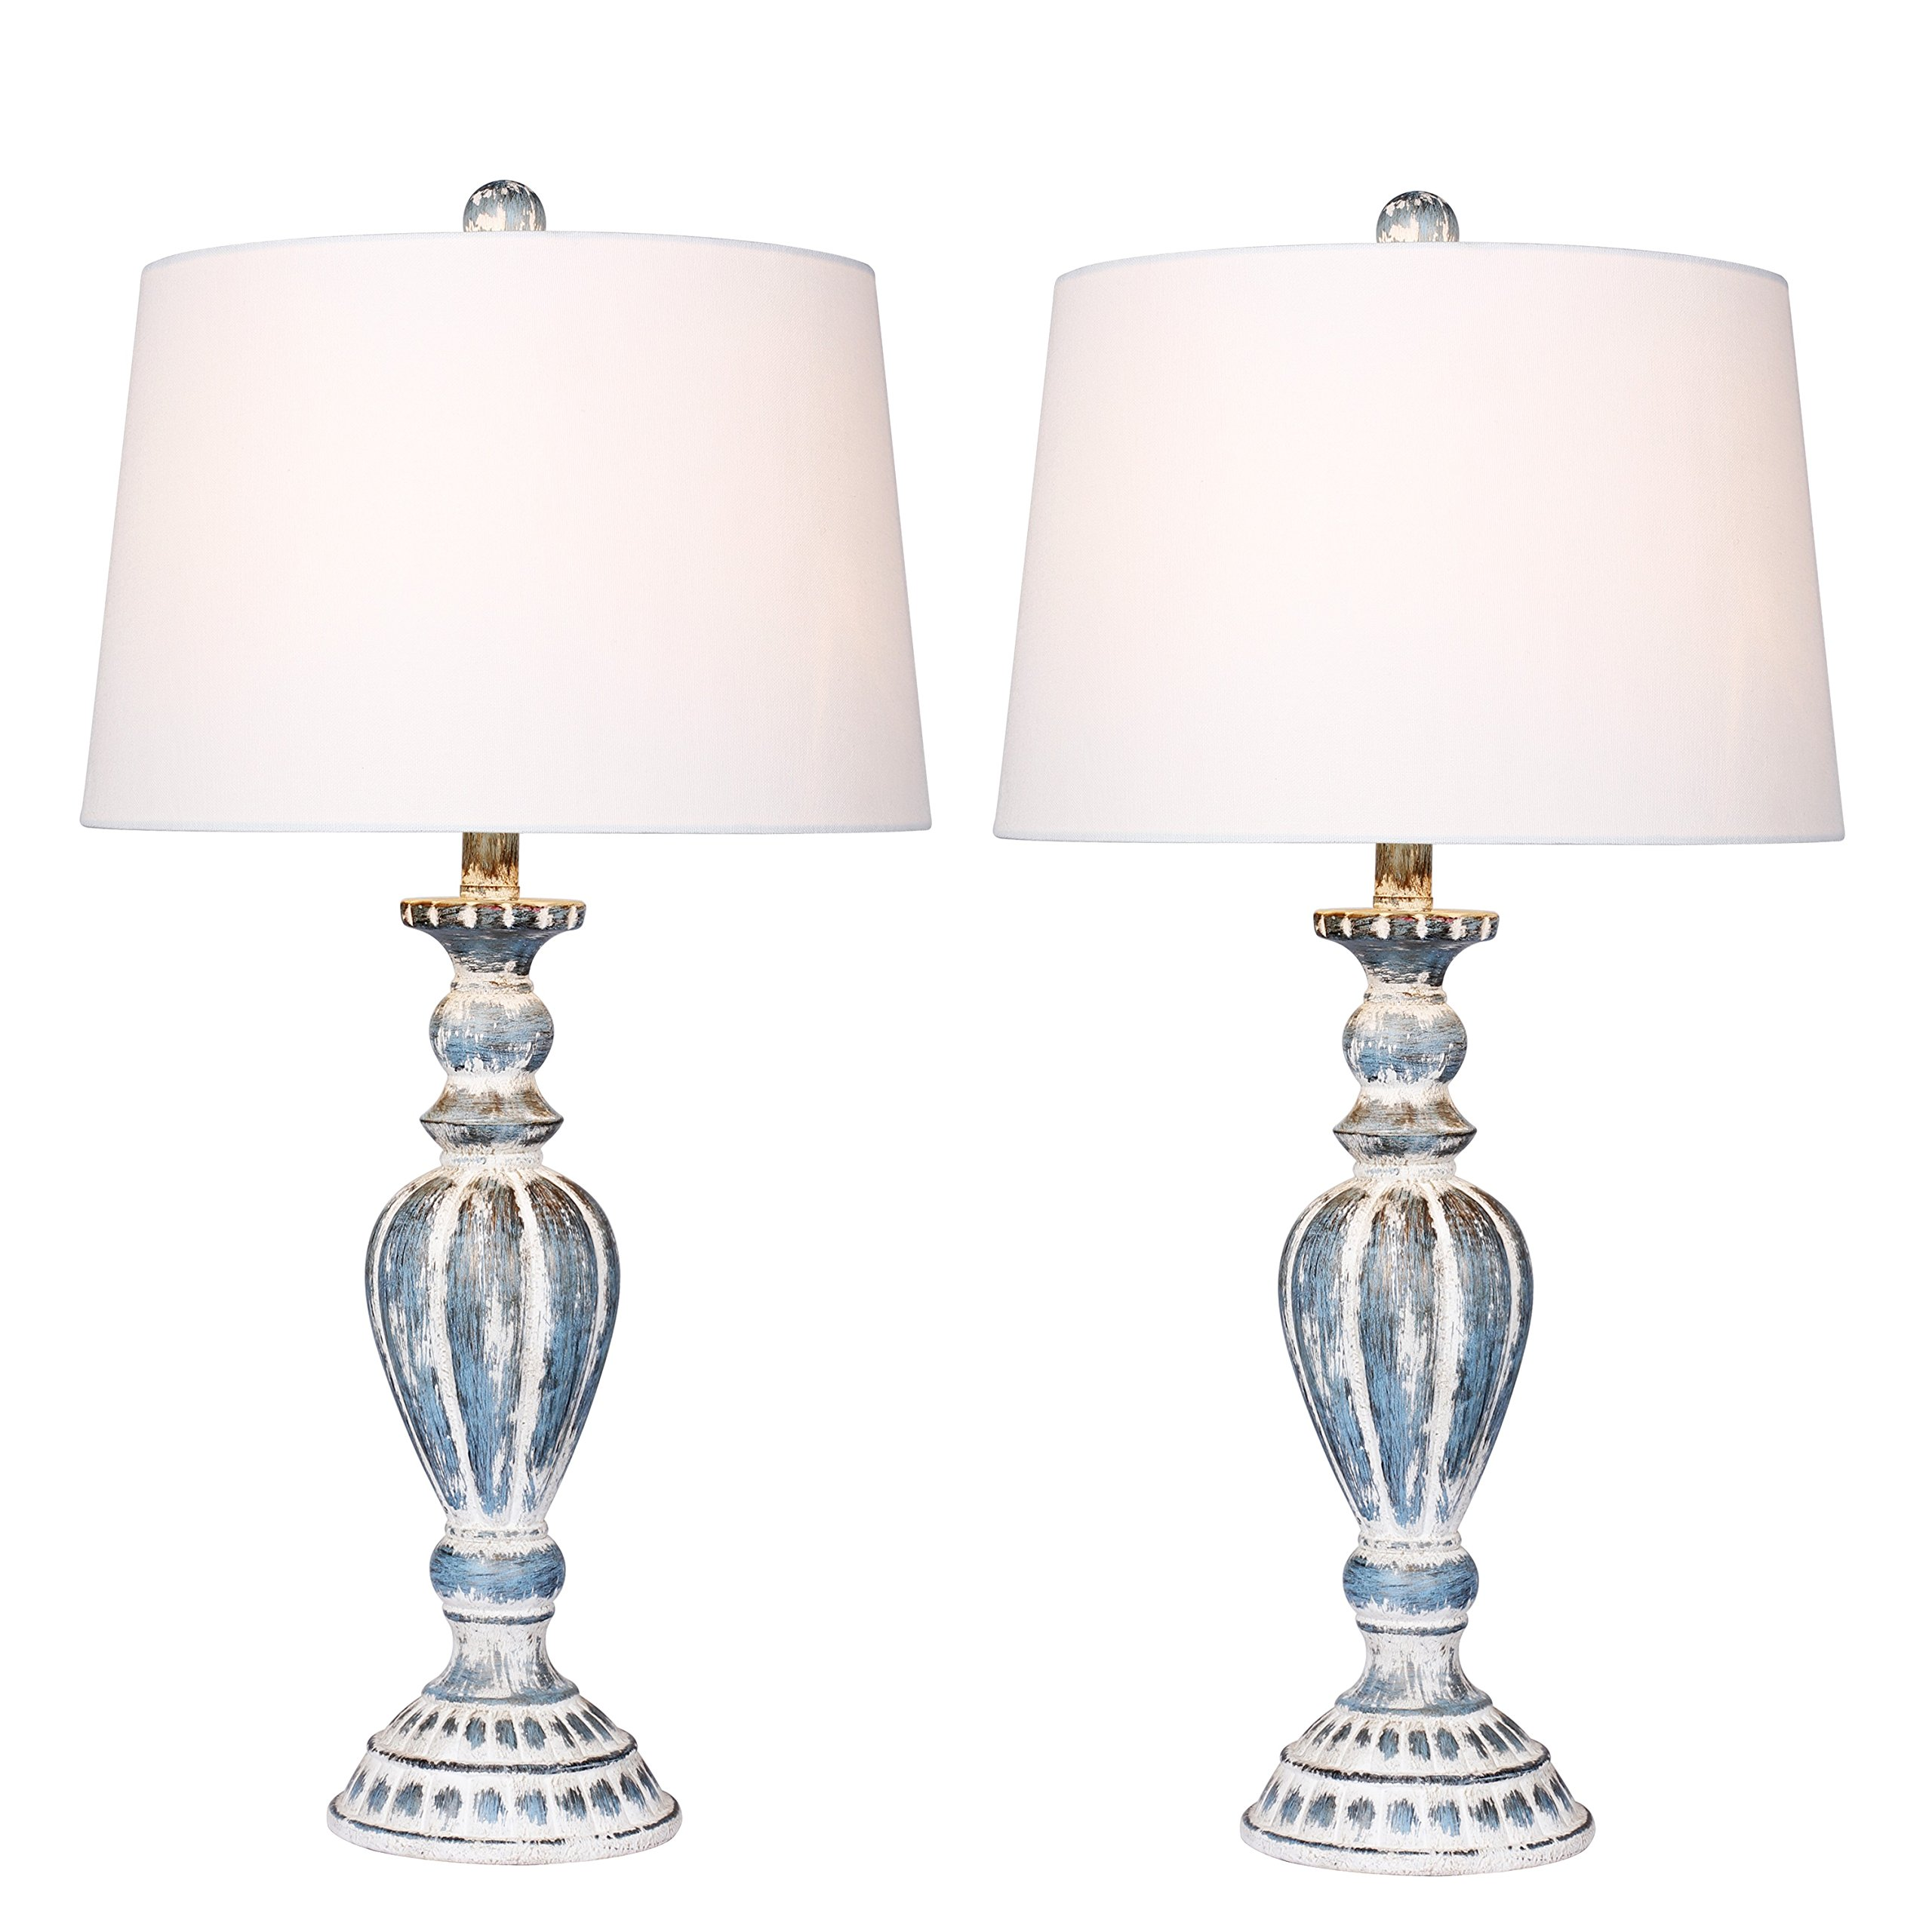 Cory Martin W-6244CAB-2PK Two without a Luxury Price Fangio Lighting's #6244CAB-2PK Distressed Candlestick Resin Table Lamps, 29.5'', Cottage Antique Blue, 2 Set